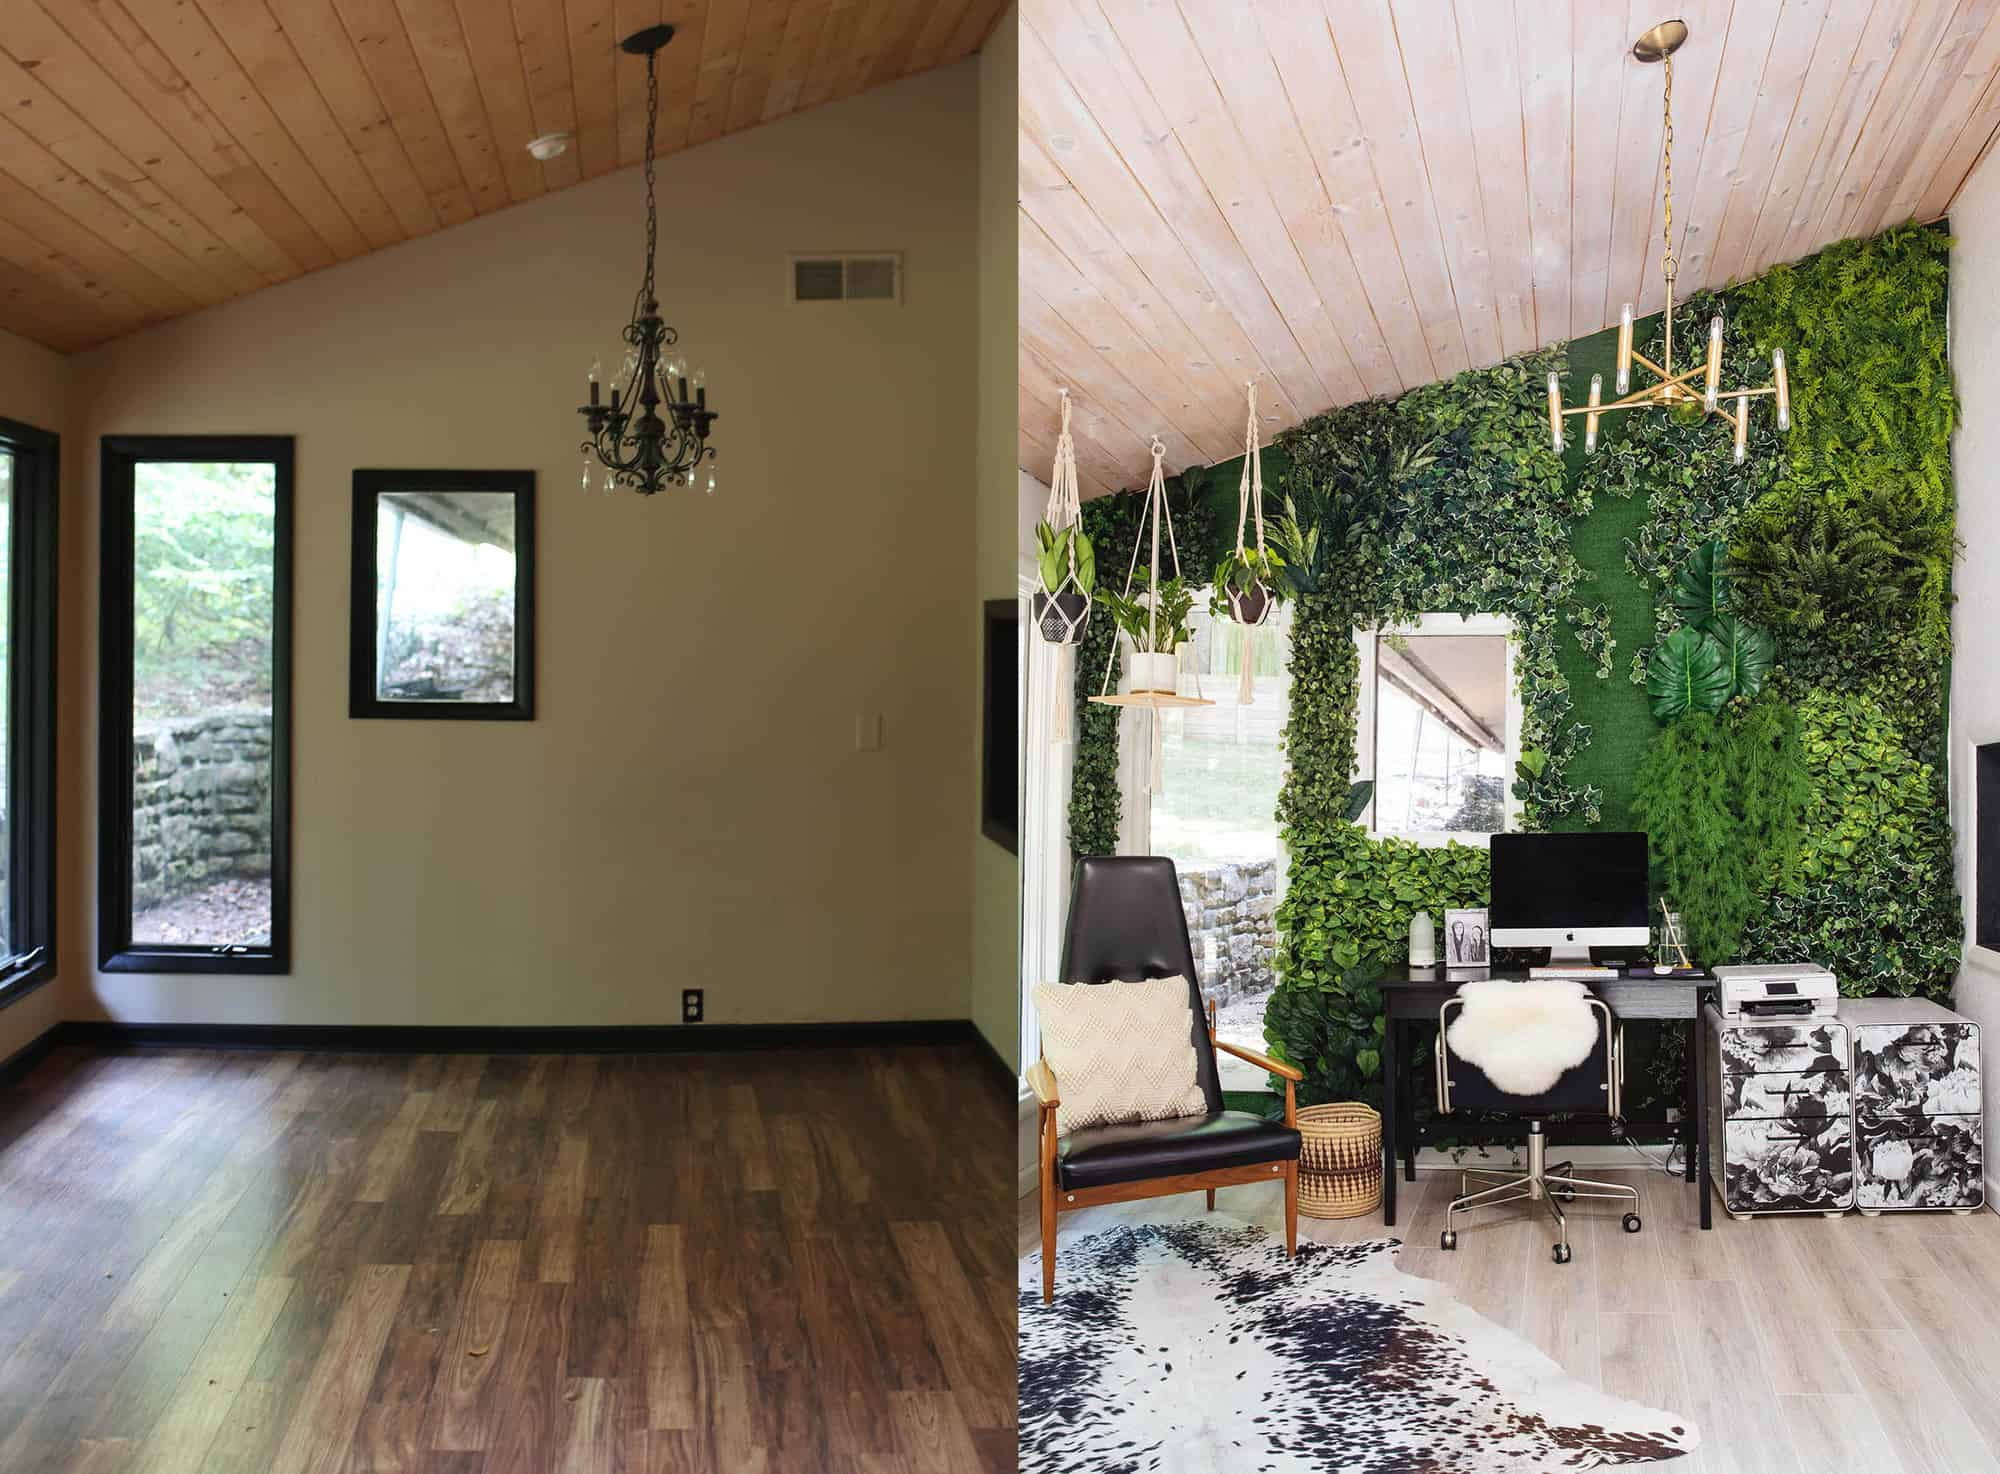 Good Here Is A Before And After Of This Room. Since Moving In, We Updated The  Floors And I Also Hand Stained The Ceilings To Lighten Up The Space  (throughout The ...